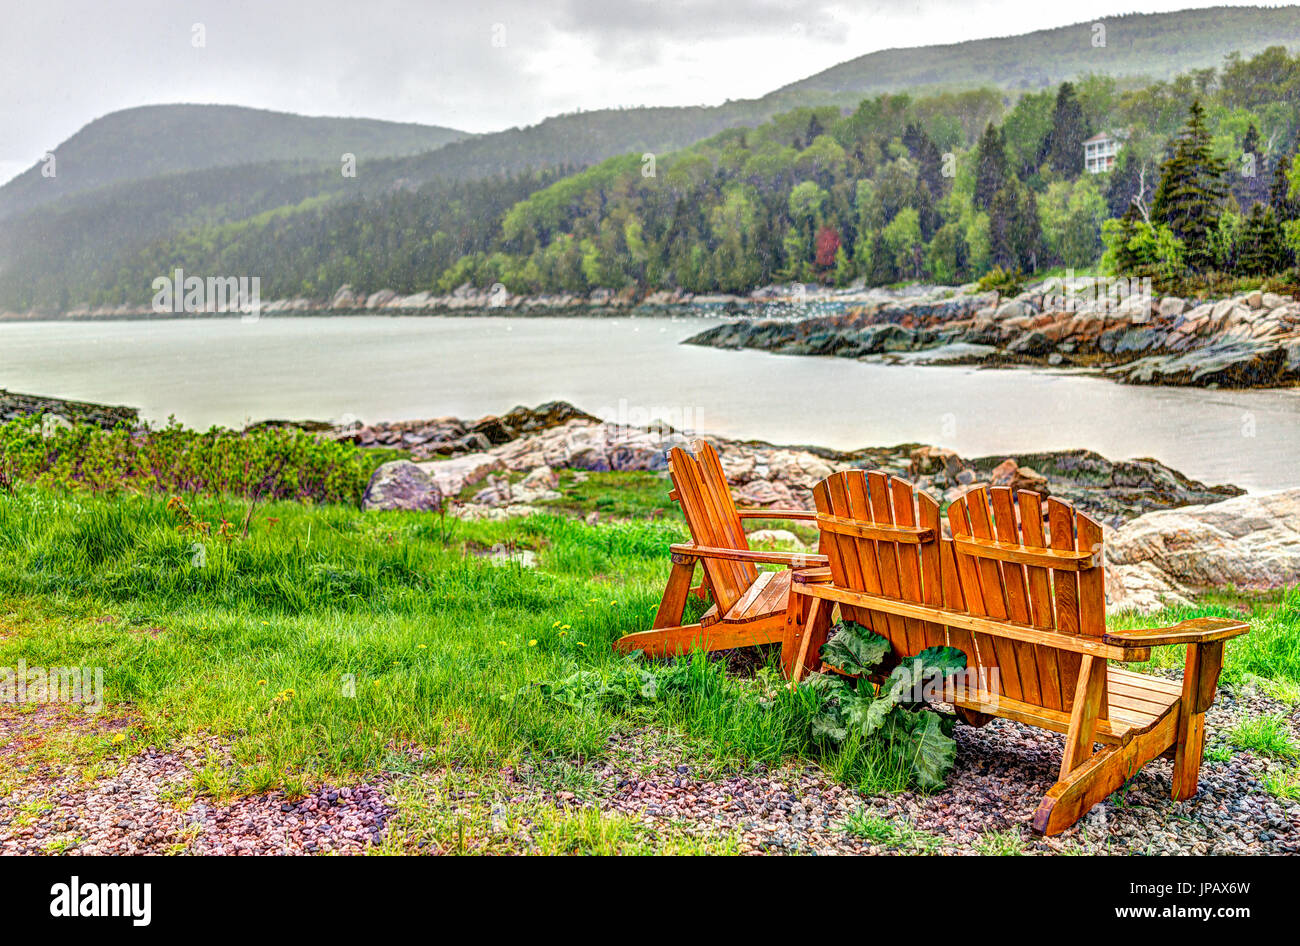 Port-au-Persil beach in Quebec, Canada Charlevoix region during stormy rainy day with Saint Lawrence river Stock Photo